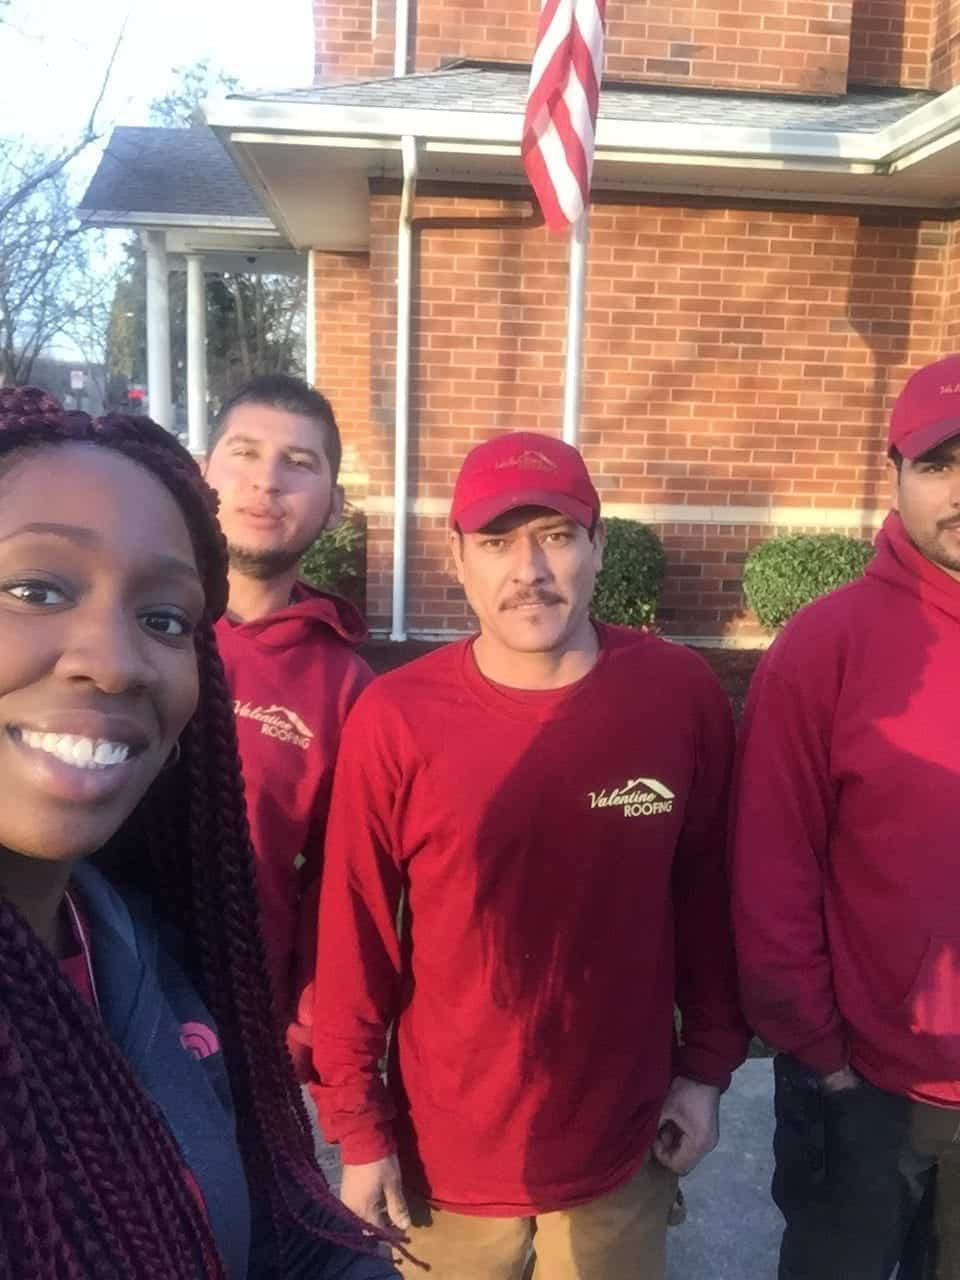 A lady homeowner taking selfie with our roofers